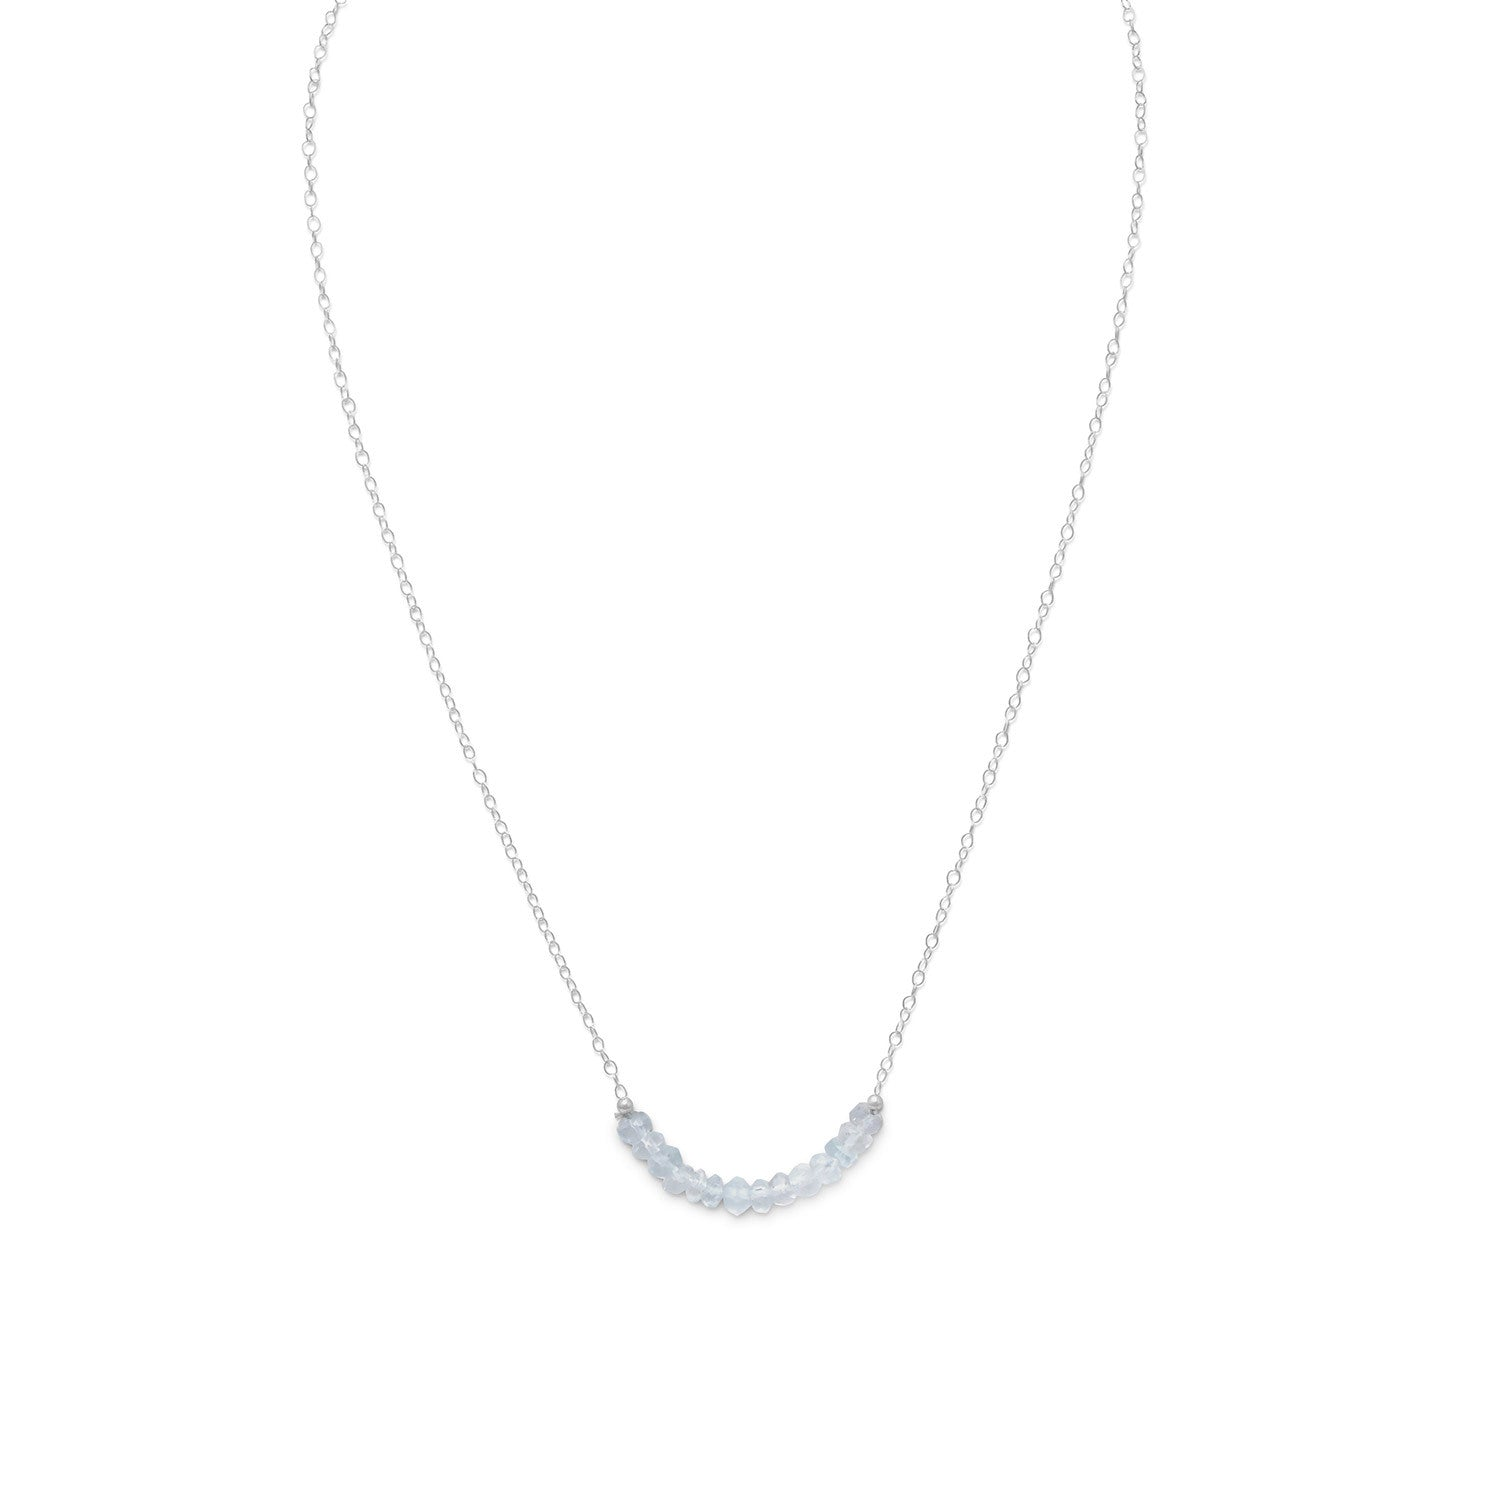 Faceted AQUAMARINE Bead Necklace - March Birthstone